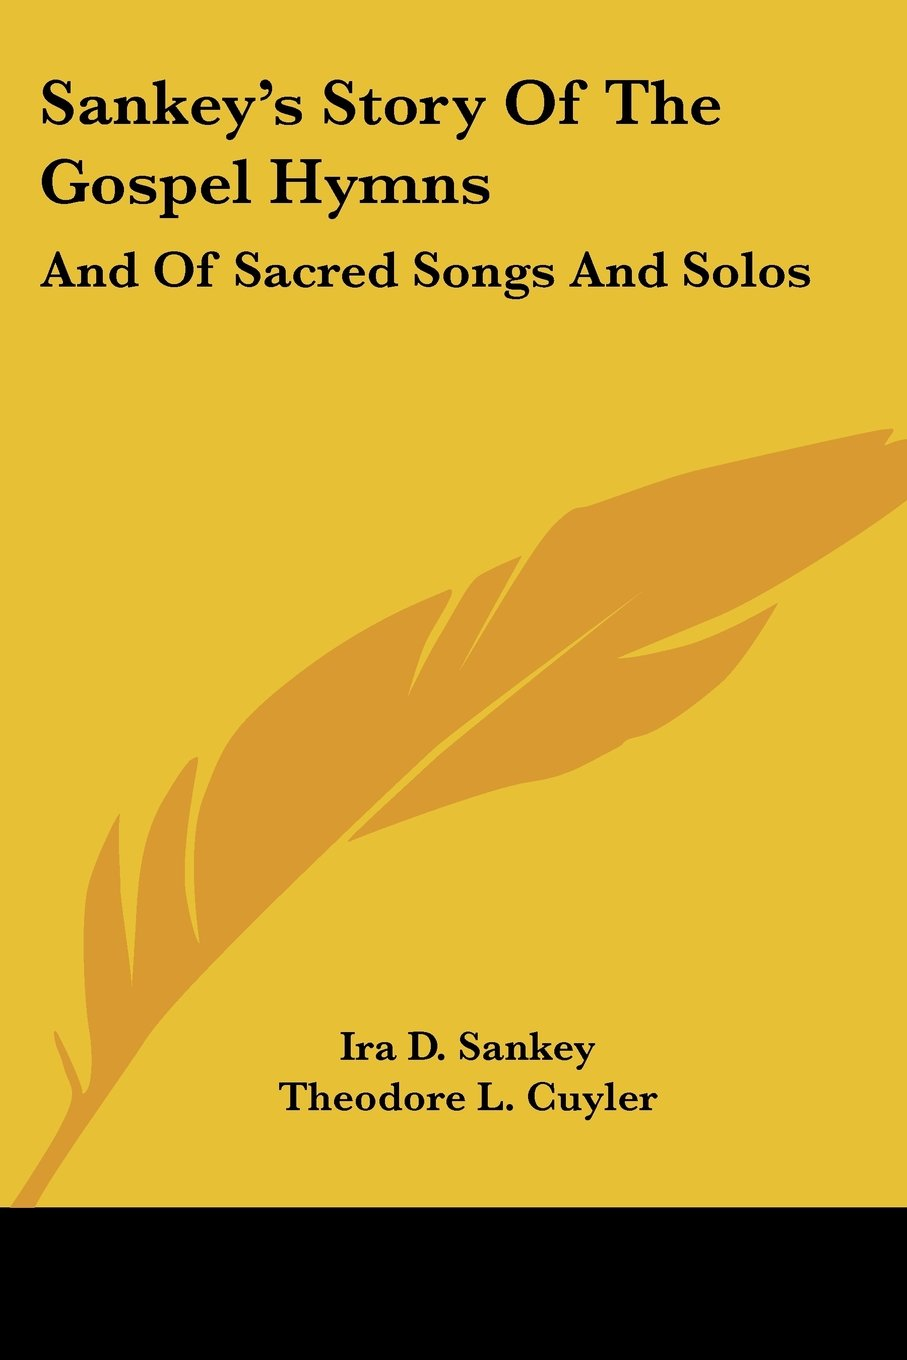 Sankey's Story Of The Gospel Hymns: And Of Sacred Songs And Solos pdf